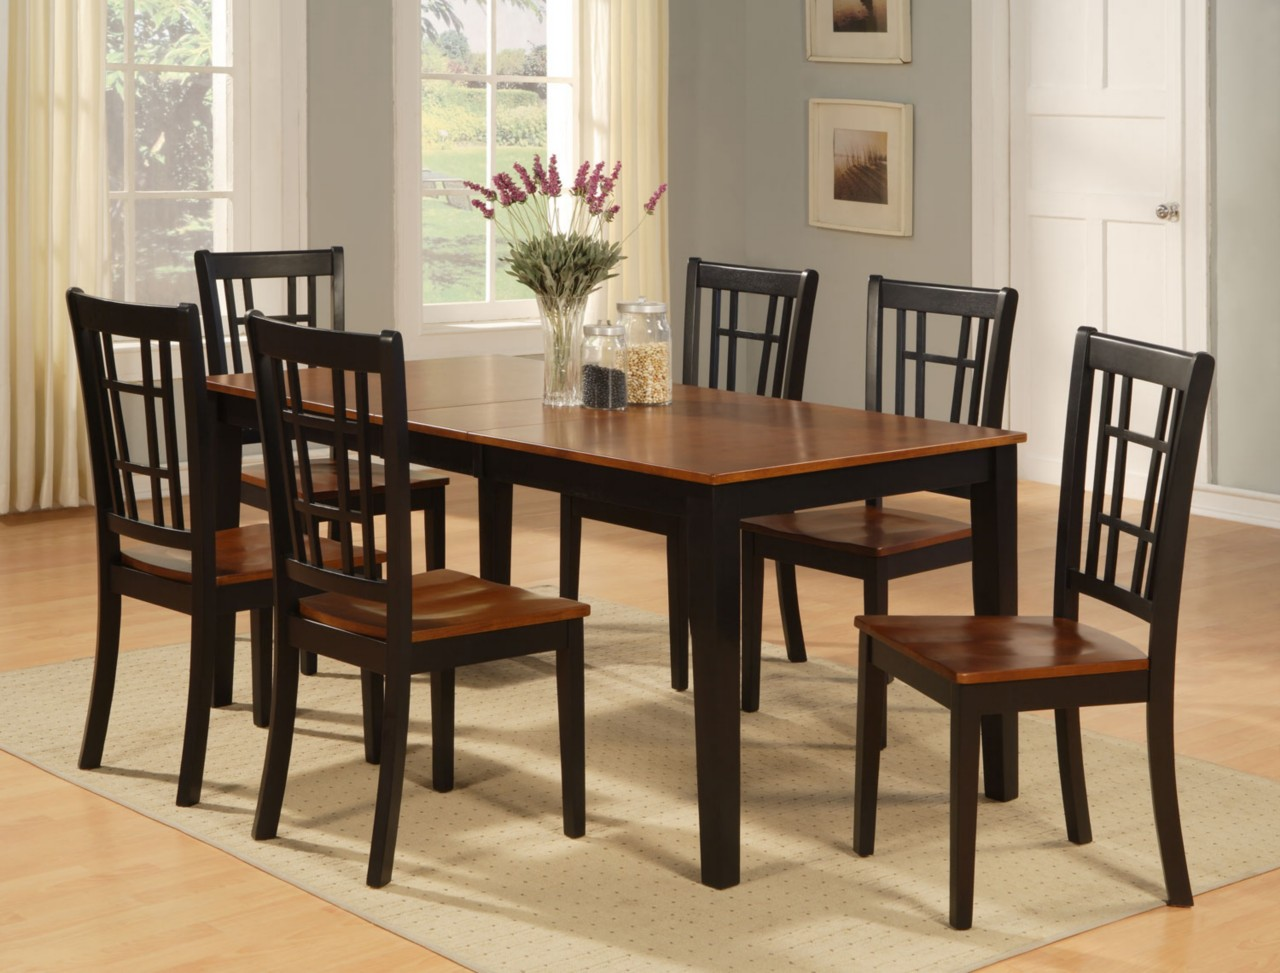 Dinette kitchen dining room set 7pc table and 6 chairs ebay for Kitchen dining sets on sale